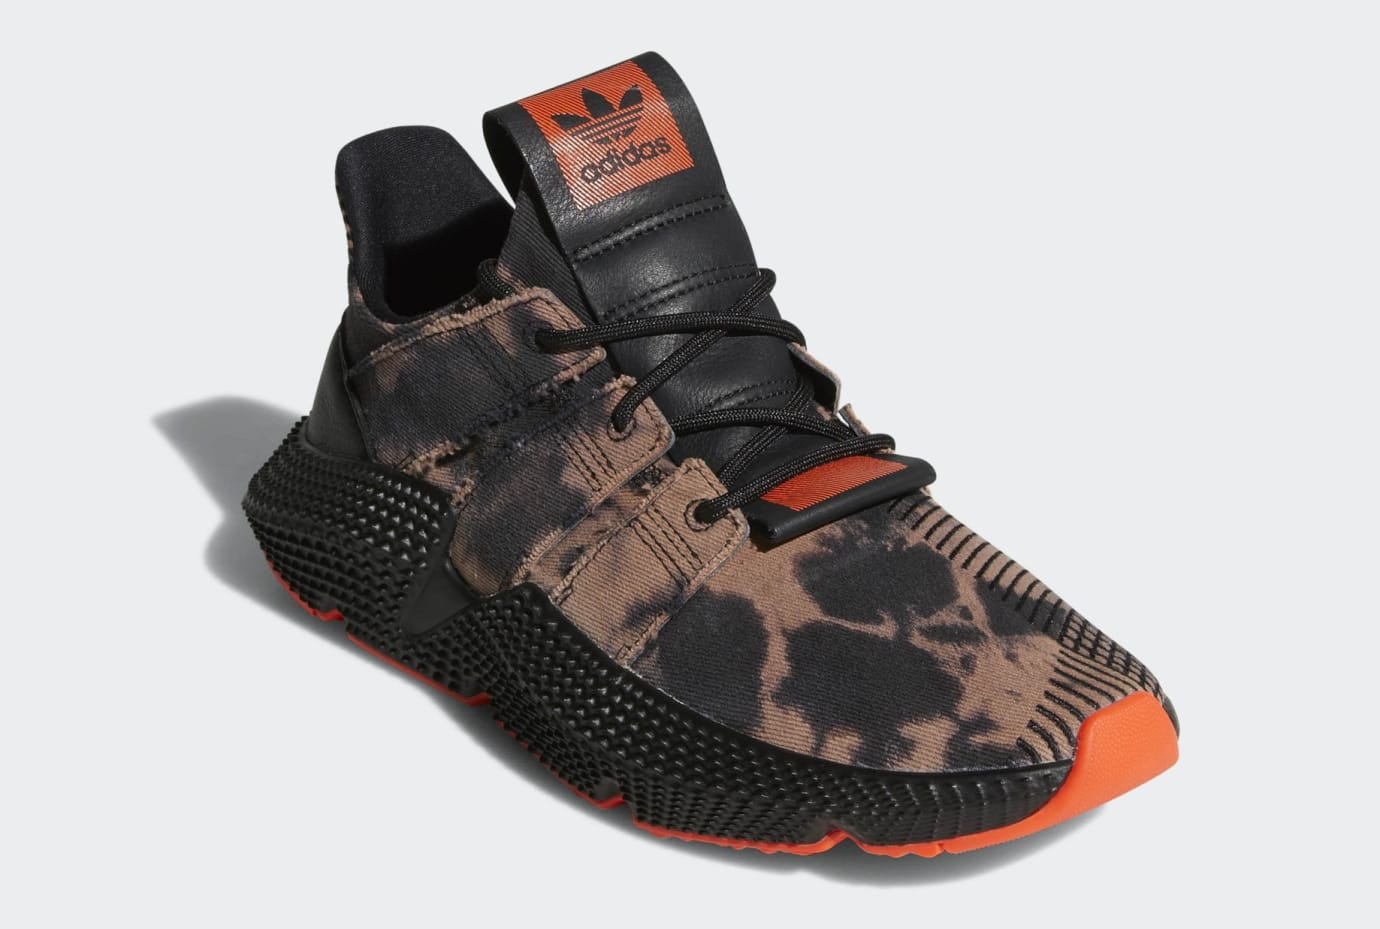 new product 6885f 42a8c Image via Adidas Adidas Prophere Bleached DB1982 (Toe)